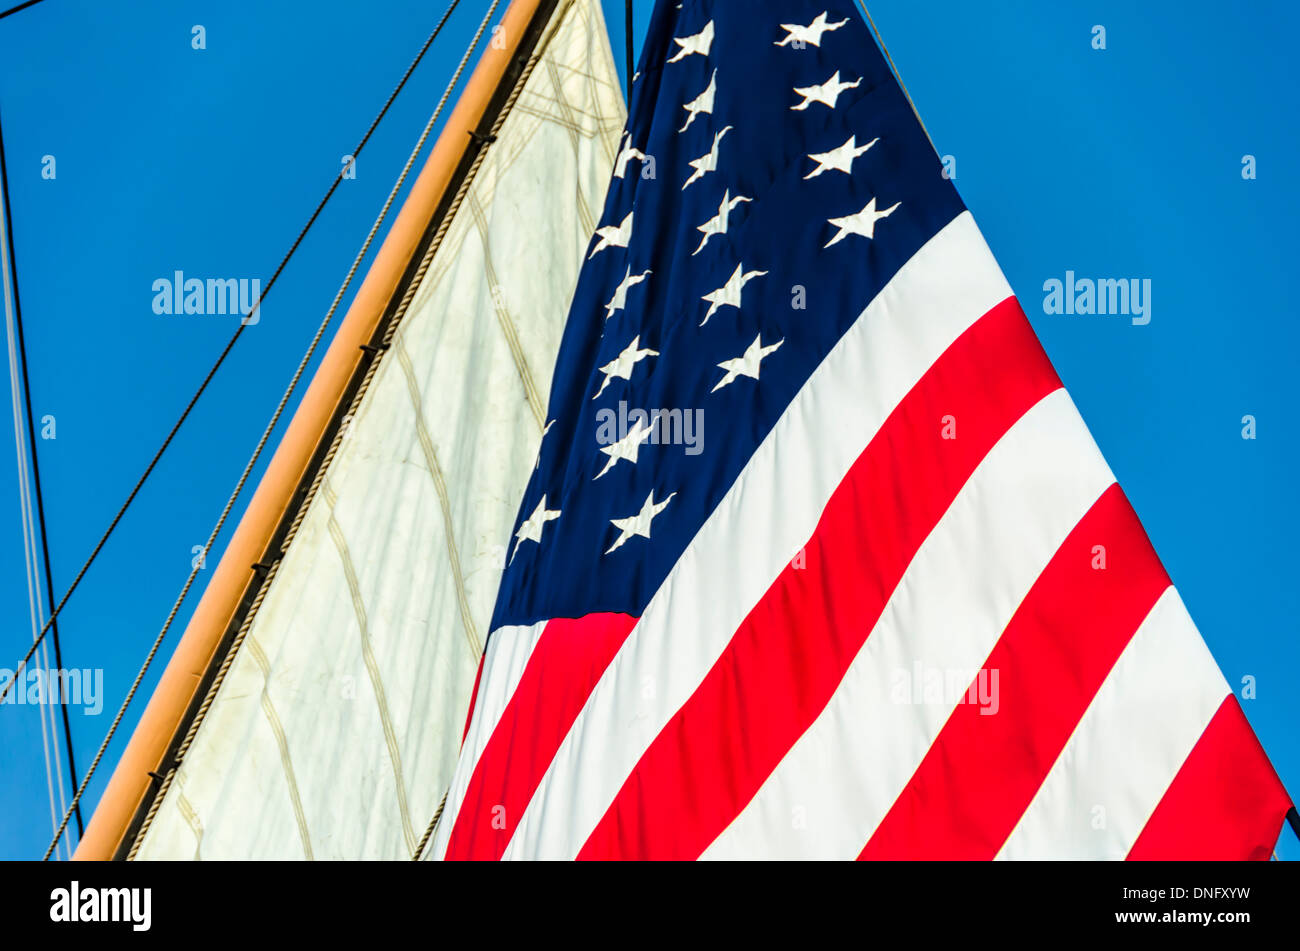 Large American Flag attached to a sail on a ship named the Star of India. San Diego, California, United States. - Stock Image